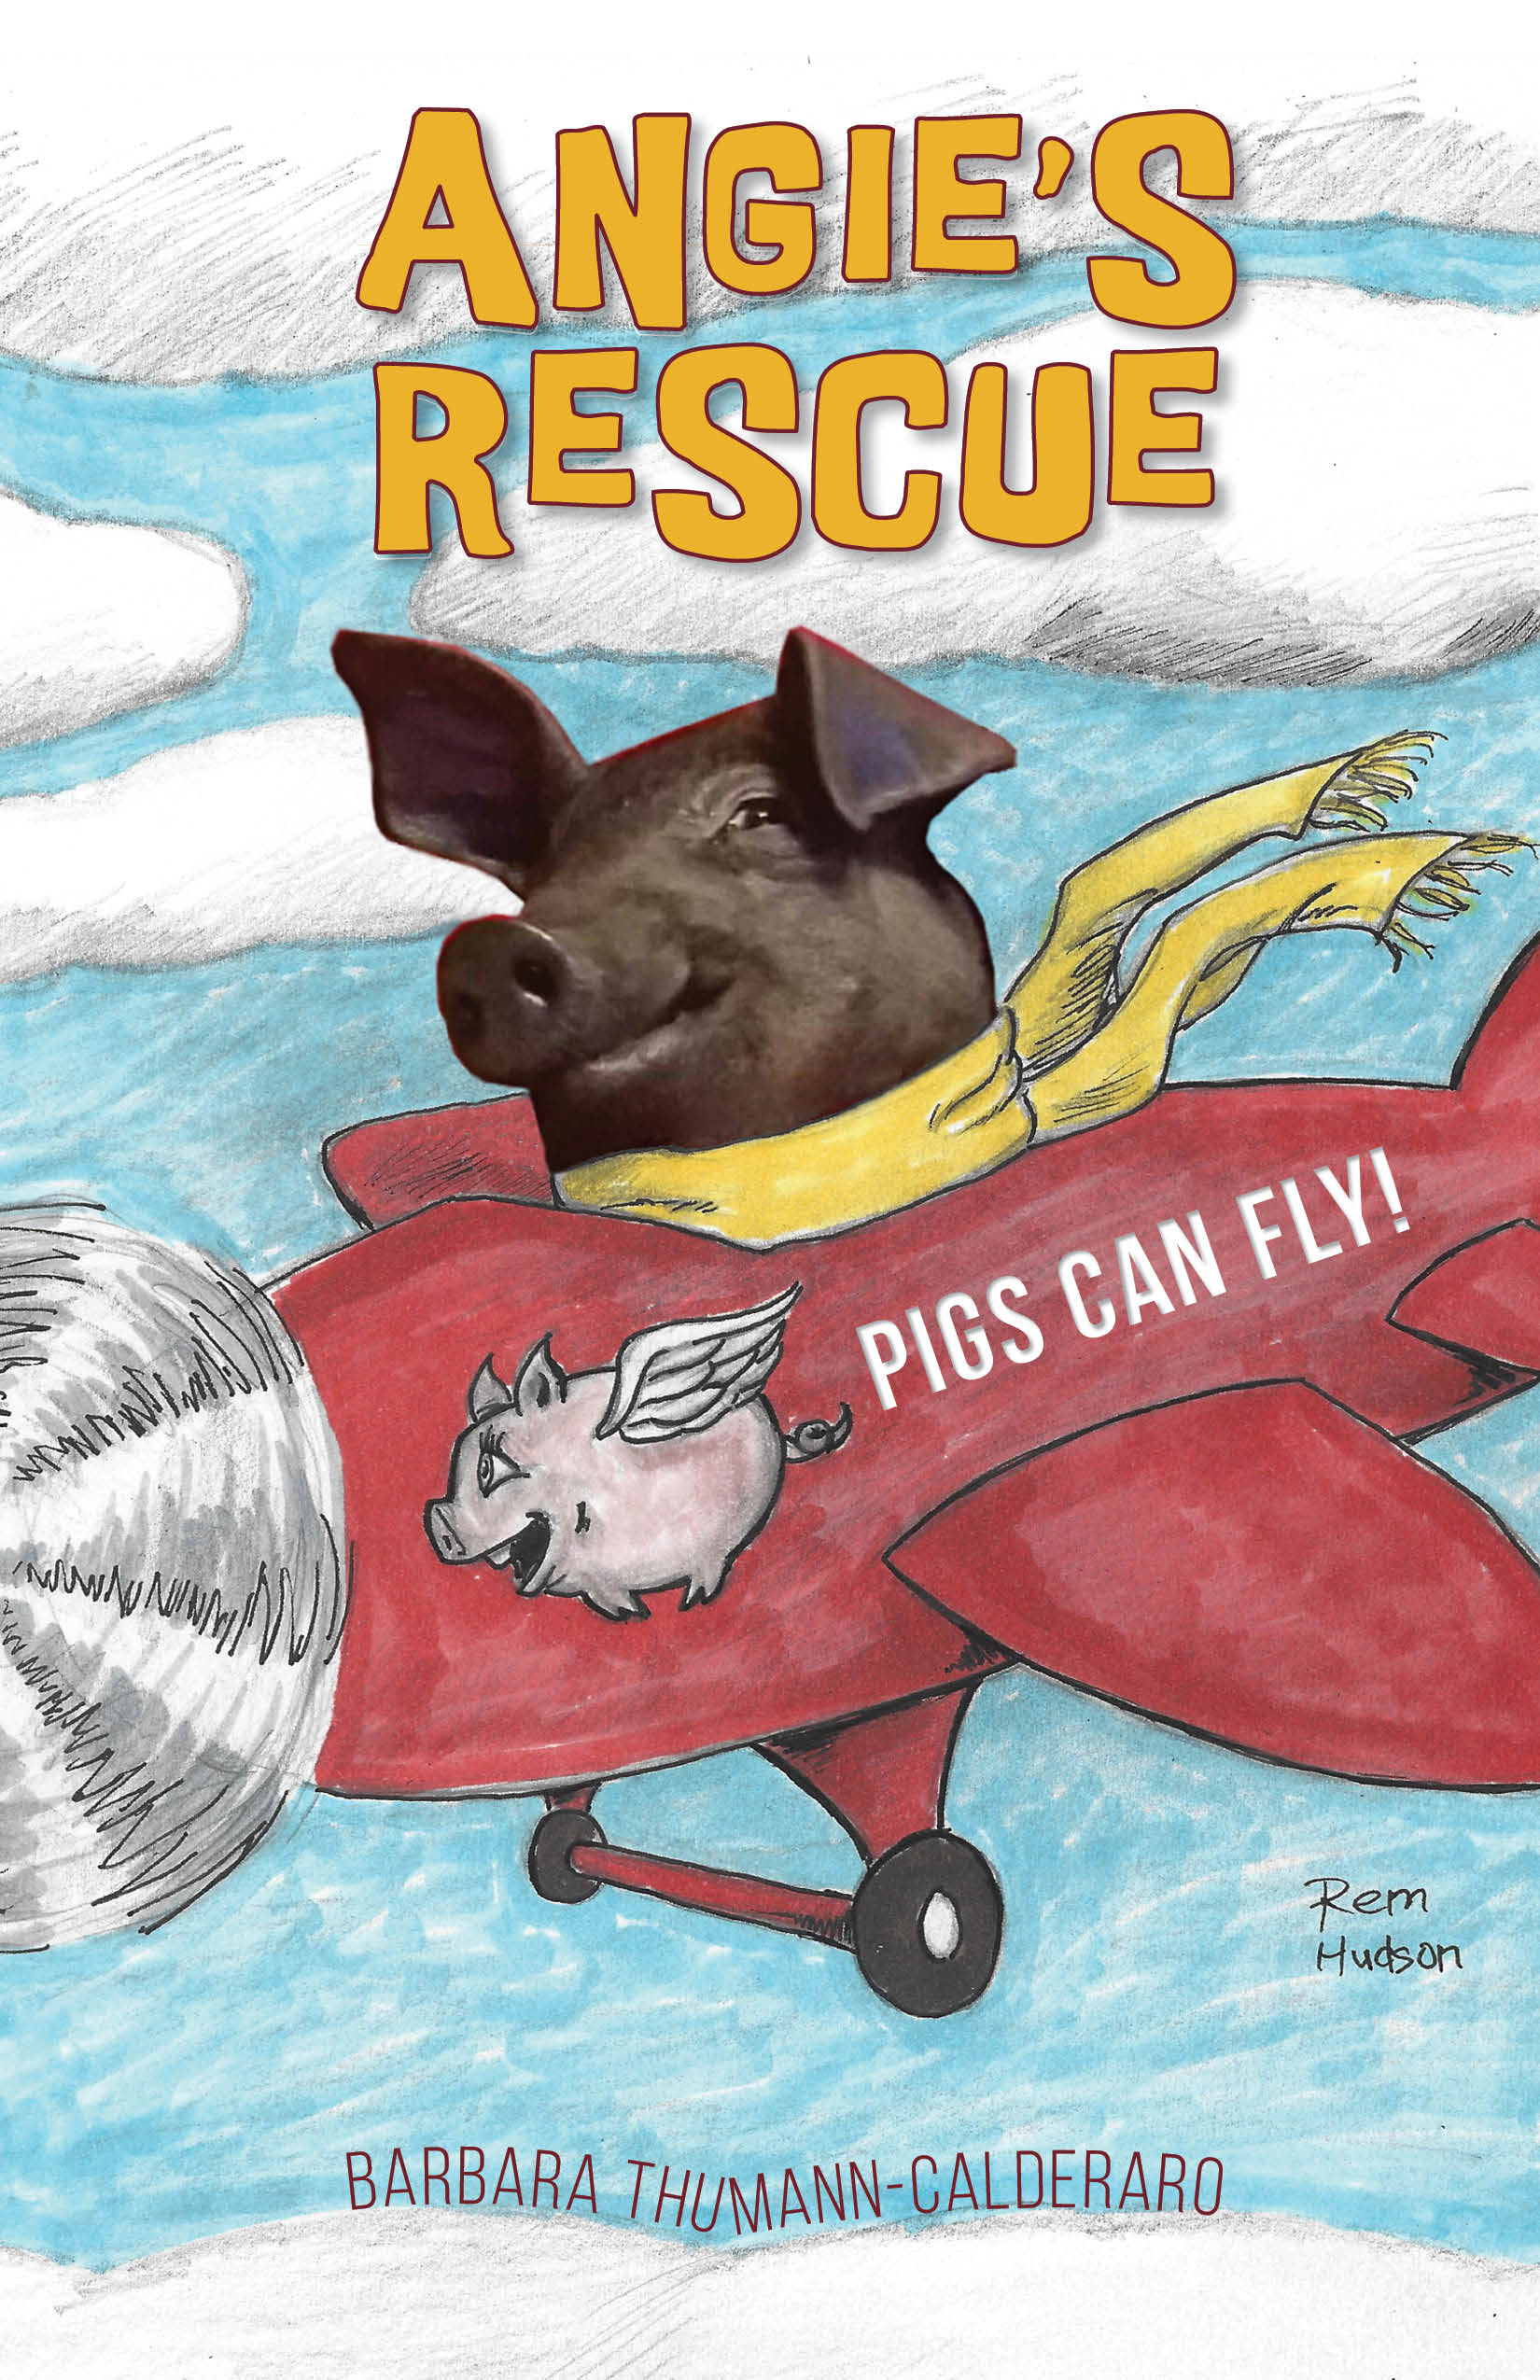 AngiesRescuePigsCANFly_Amazon